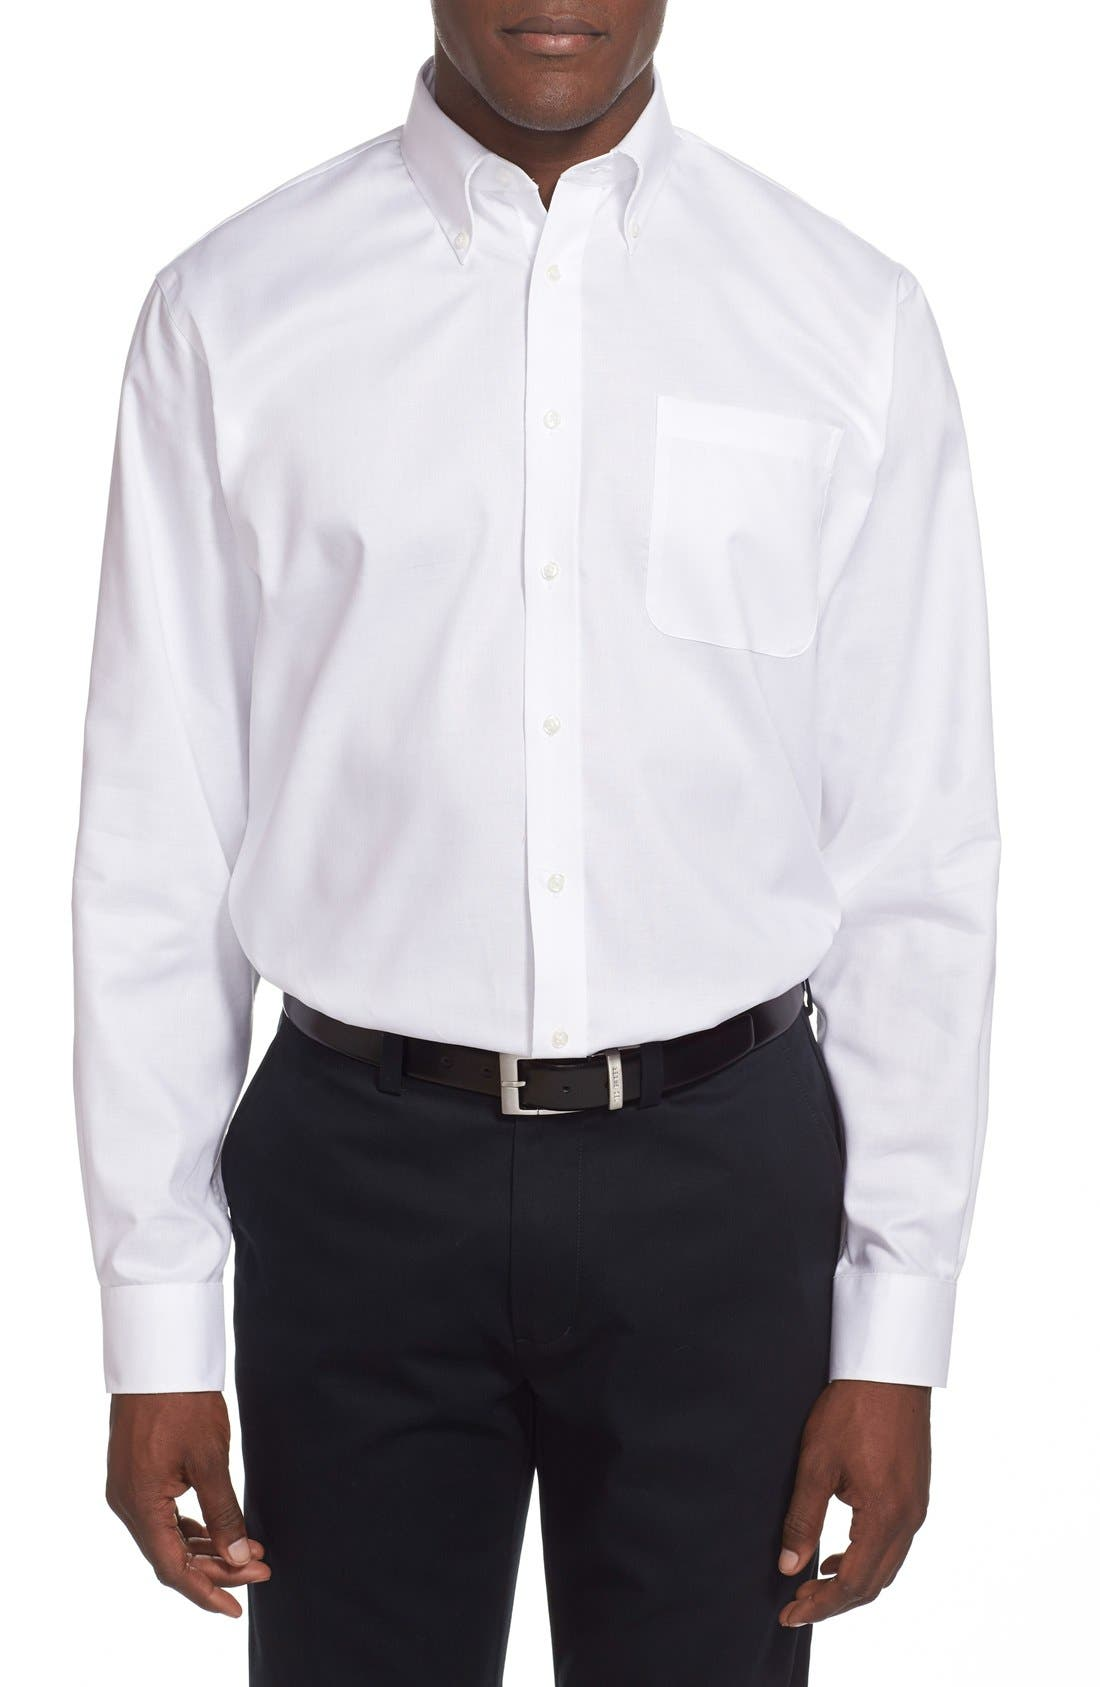 NORDSTROM MEN'S SHOP,                             Nordstrom Traditional Fit Non-Iron Dress Shirt,                             Alternate thumbnail 4, color,                             100